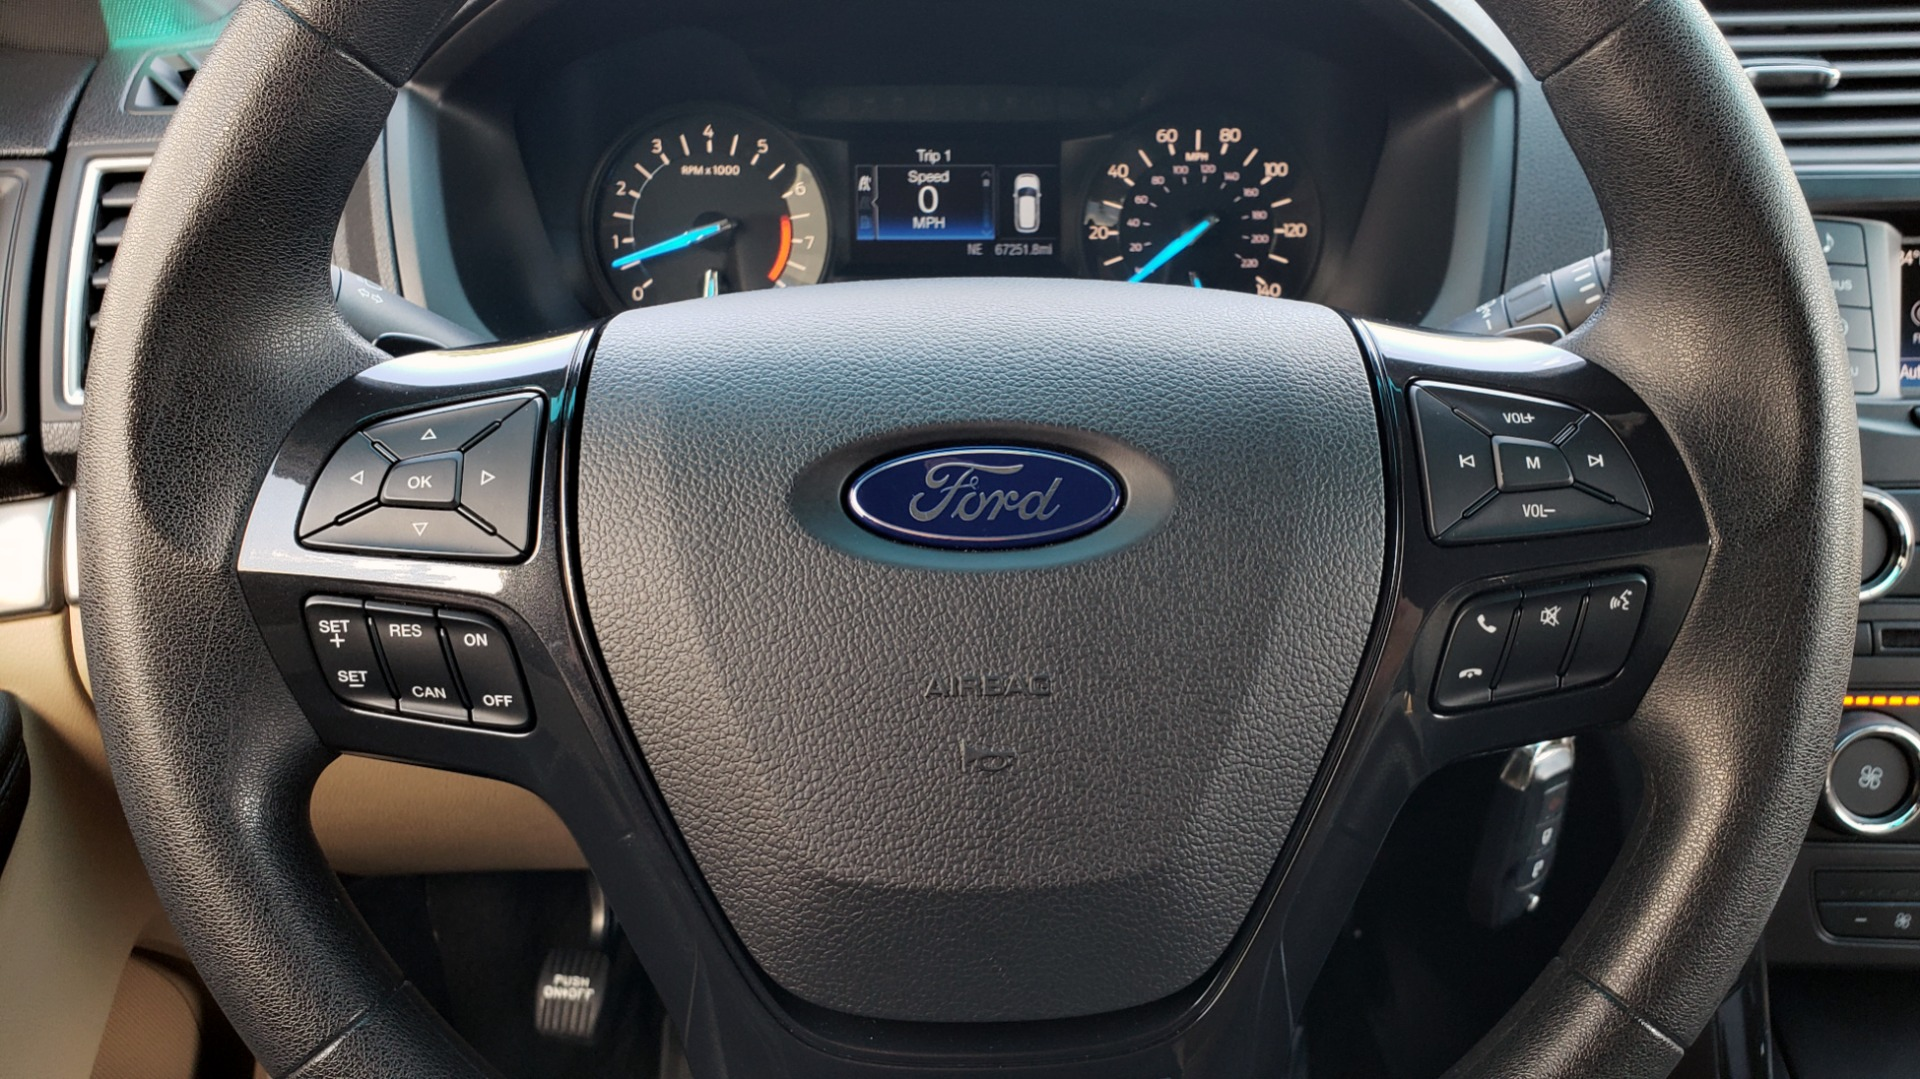 Used 2017 Ford EXPLORER 3.5L V6 / 6-SPD AUTO / BLIND SPOT MONITOR / 3-ROW / SYNC / REARVIEW for sale $22,995 at Formula Imports in Charlotte NC 28227 38